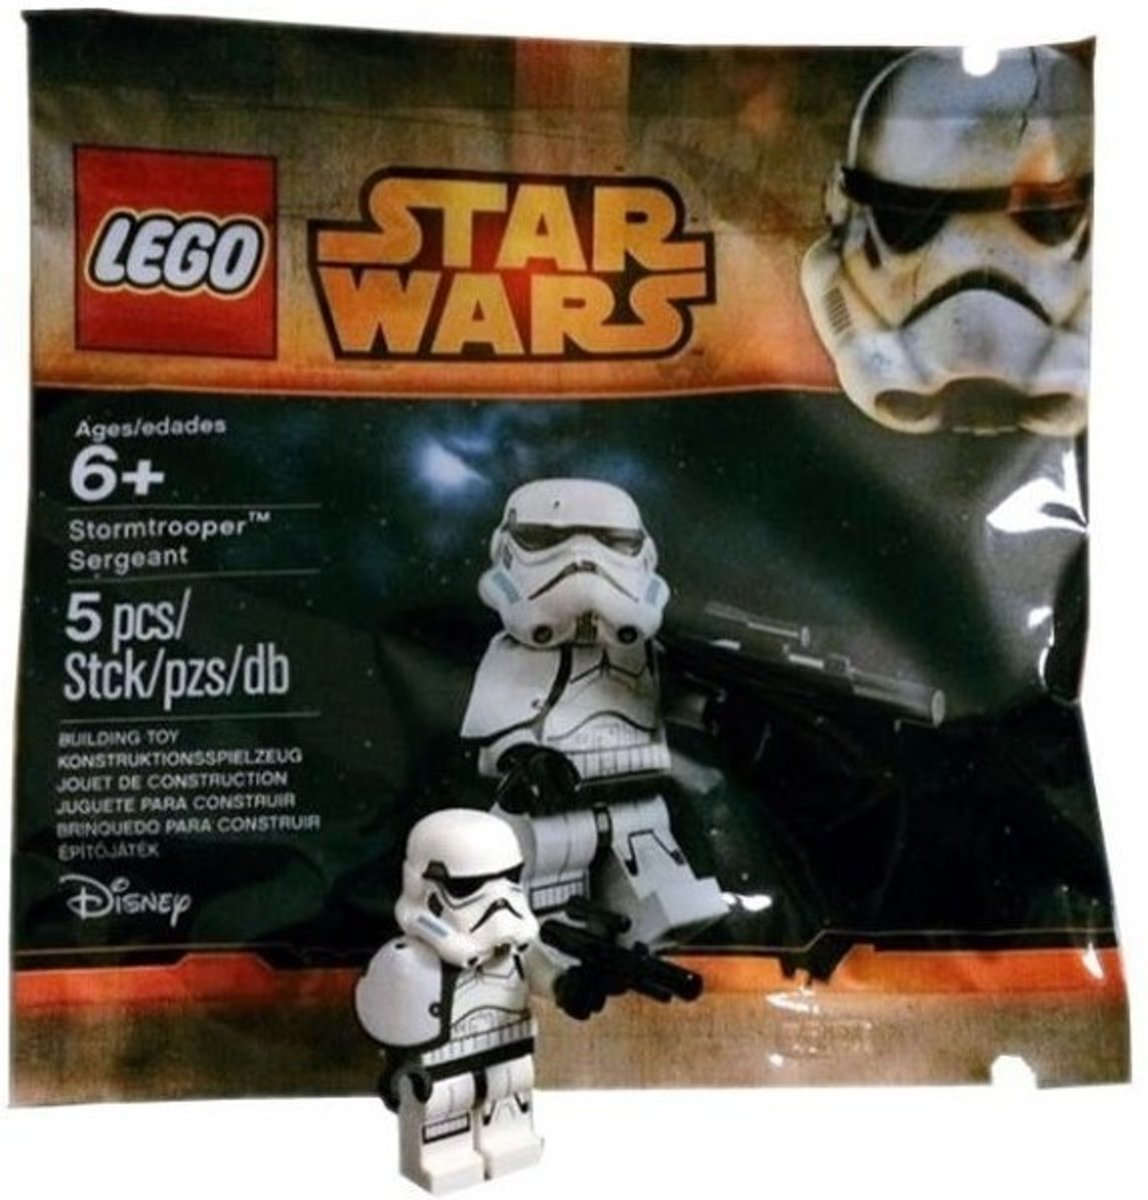 LEGO 5002938 Stormtrooper Sergeant (Polybag)